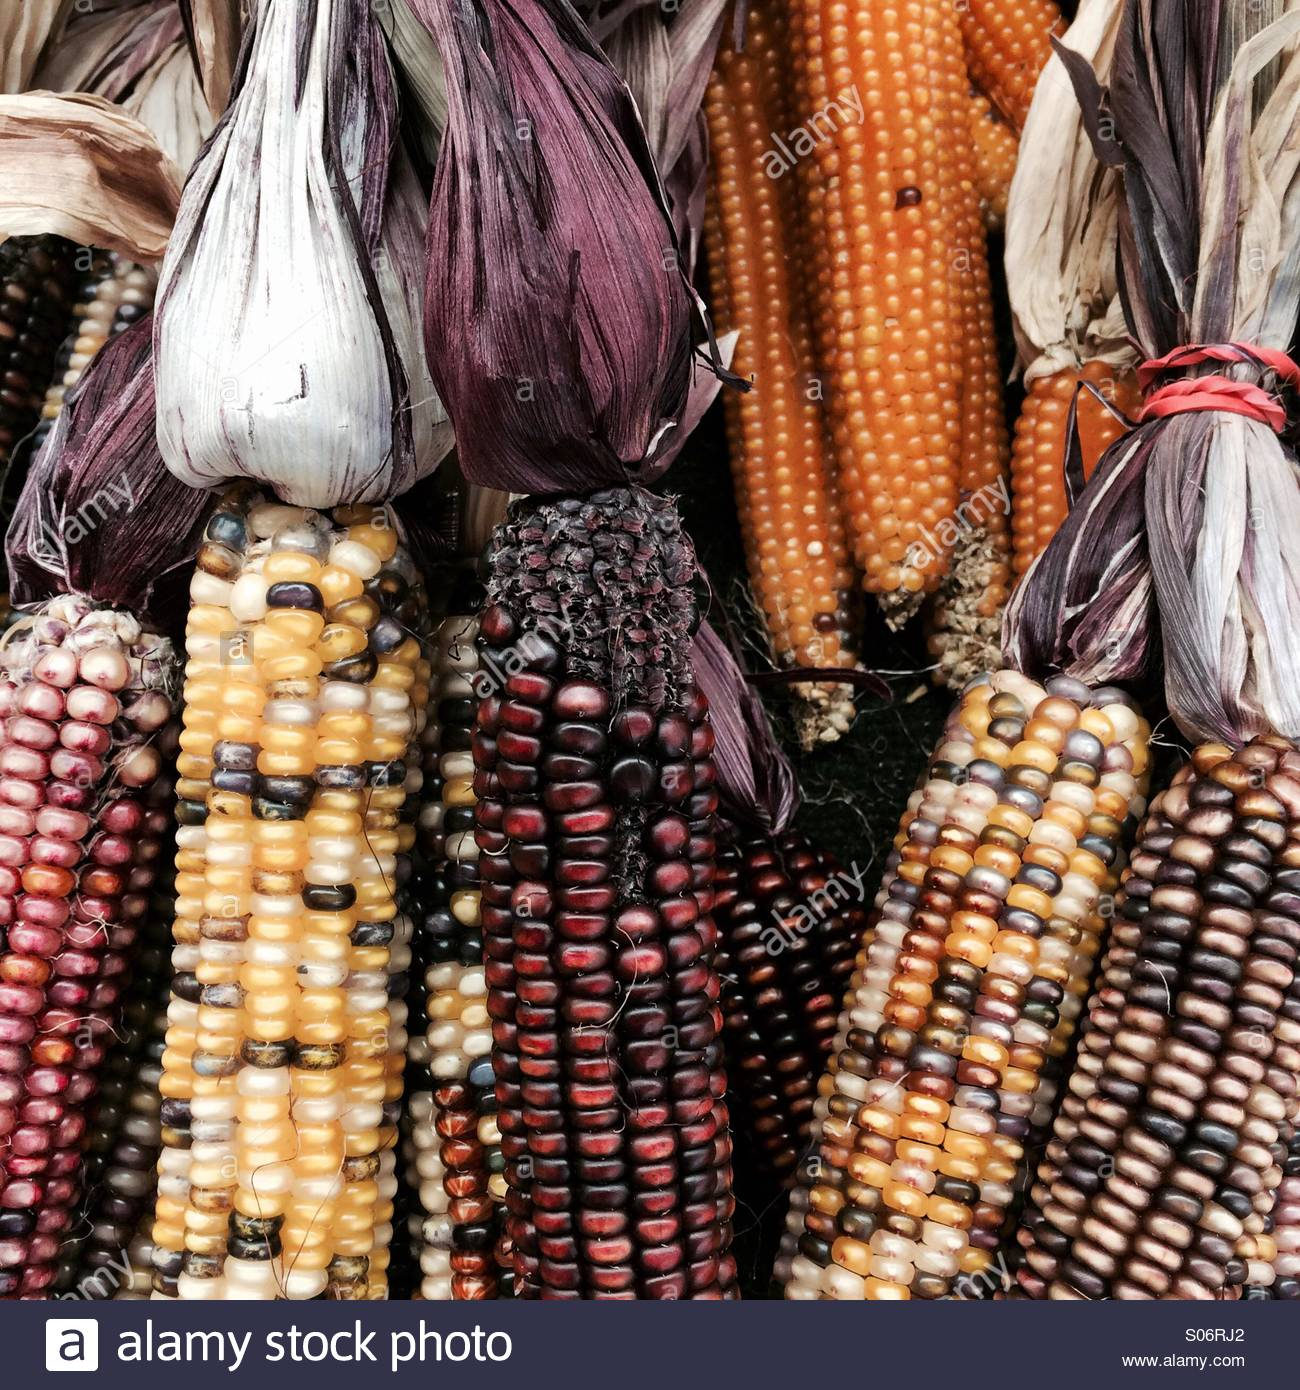 Bundles of decorative ears of corn at a roadside stand - Stock Image